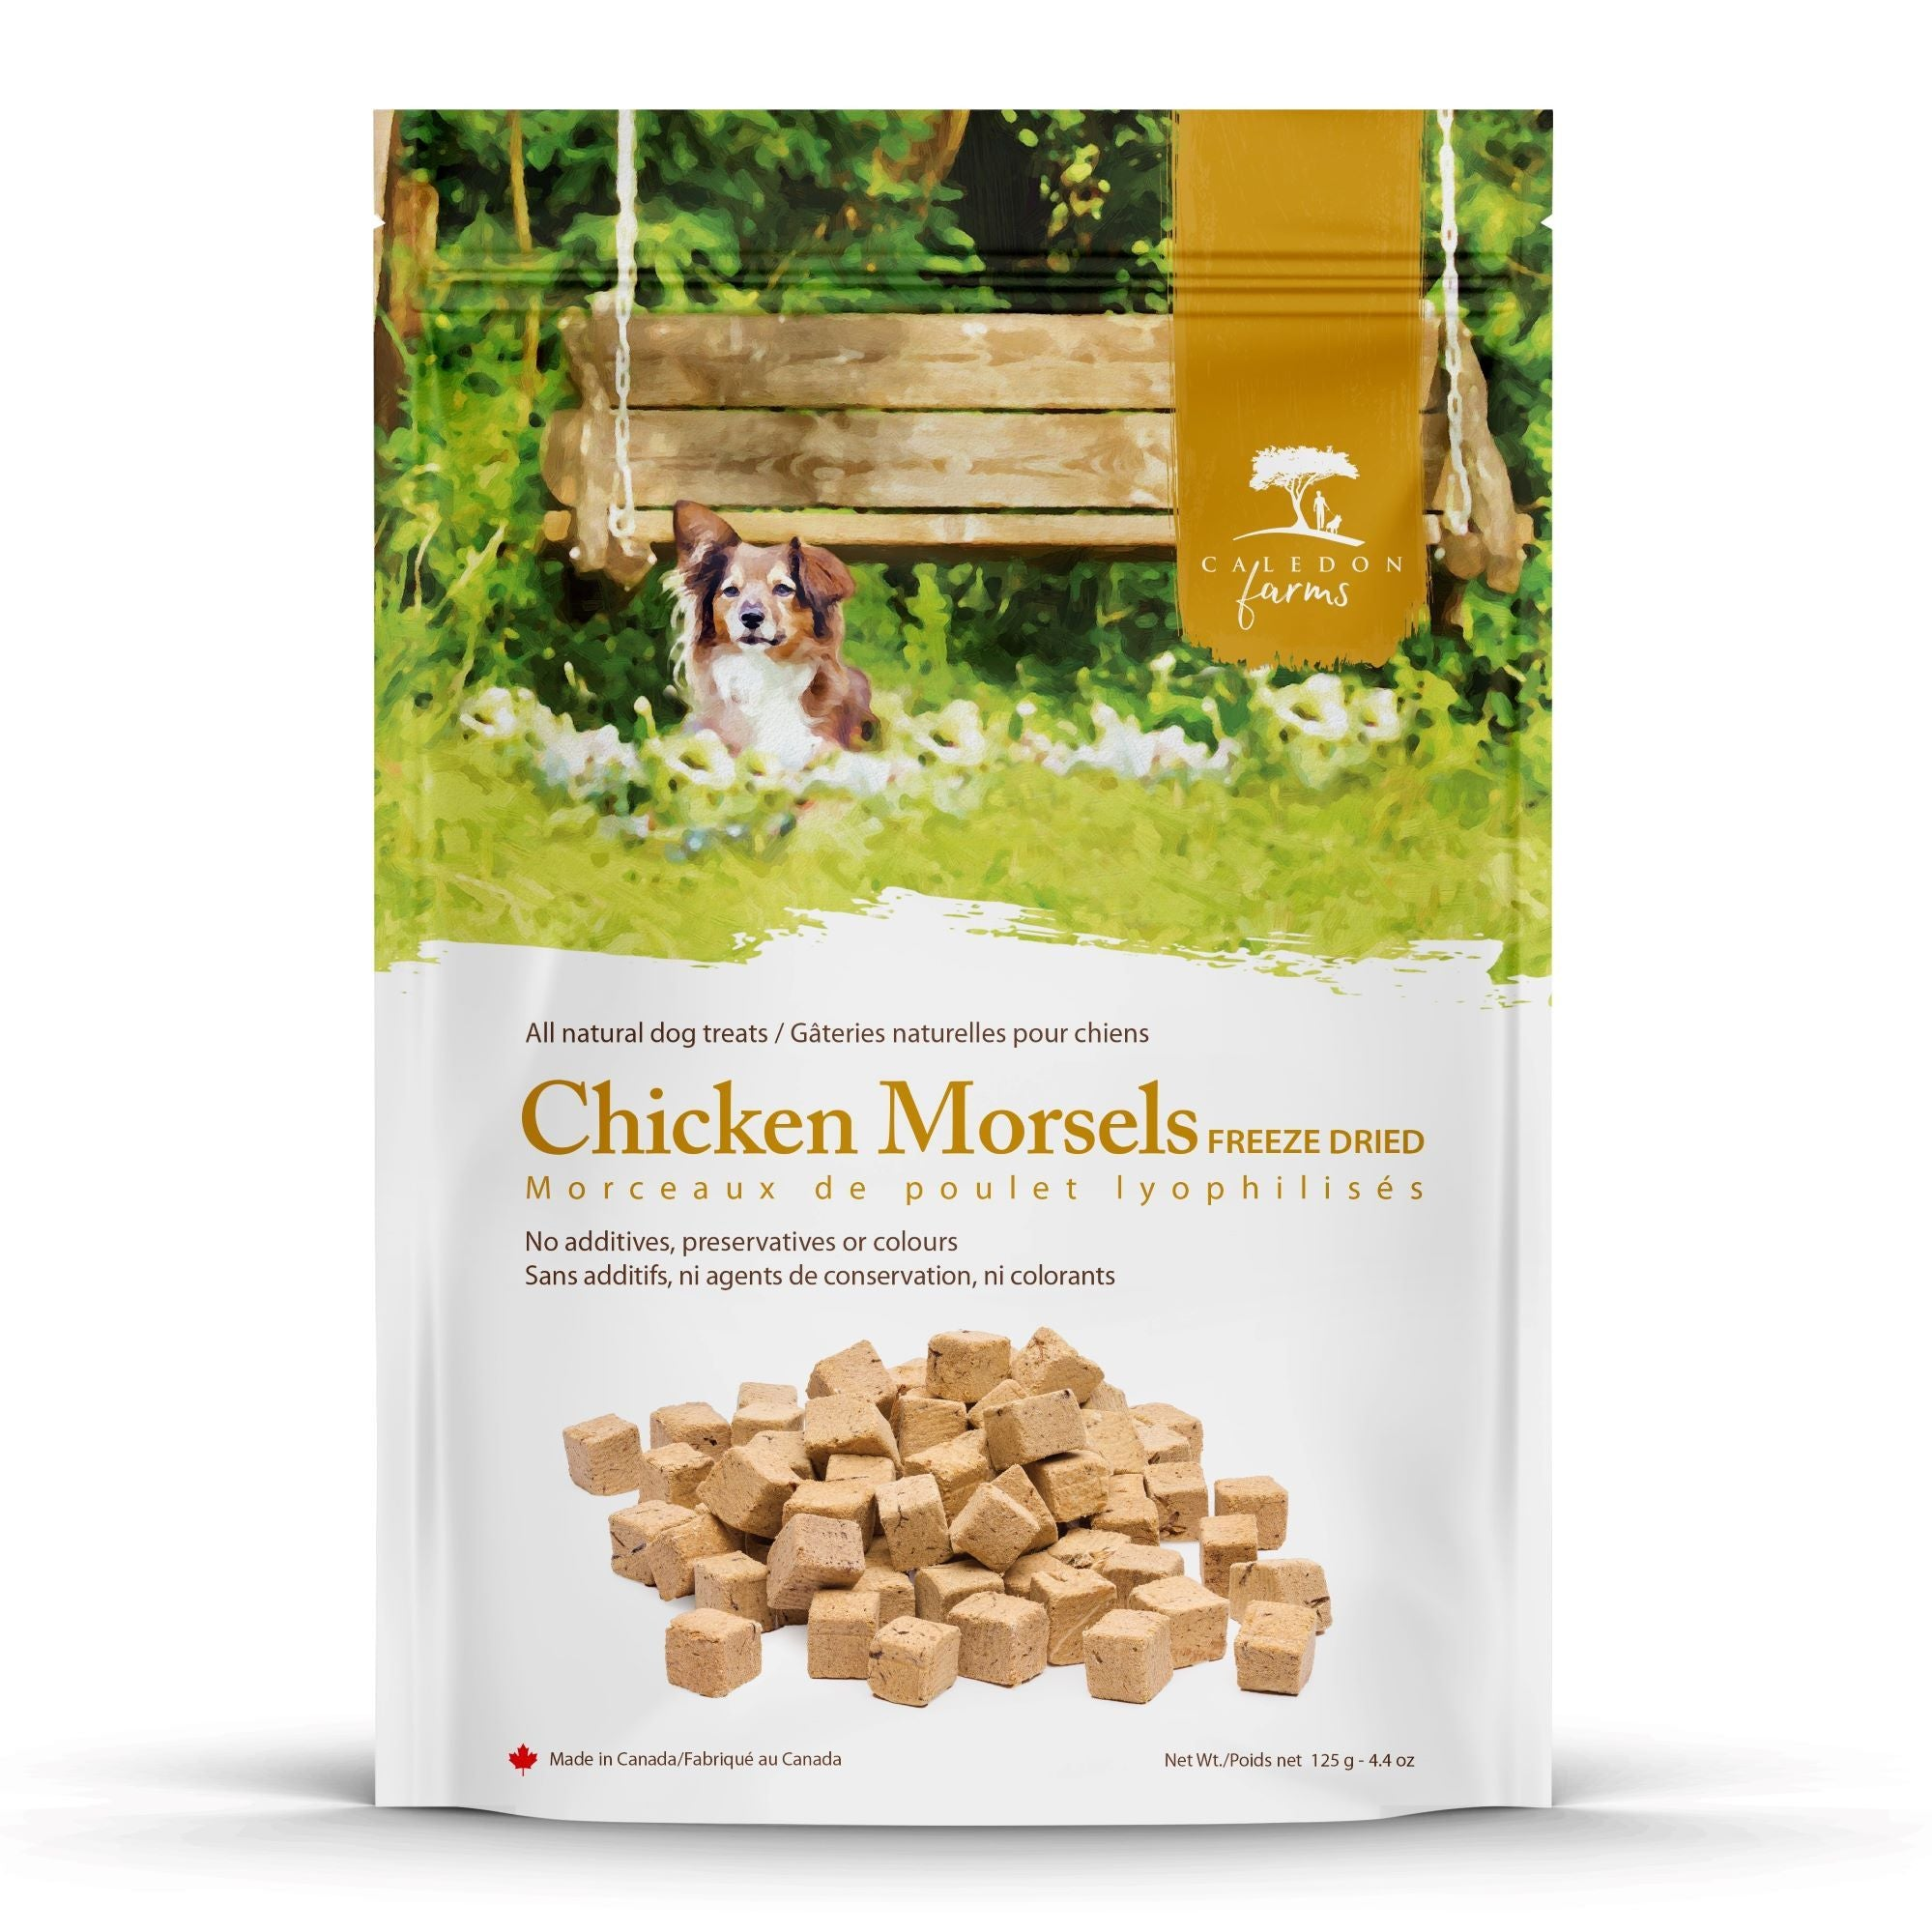 Chicken Morsels Dog Treats Bag Front